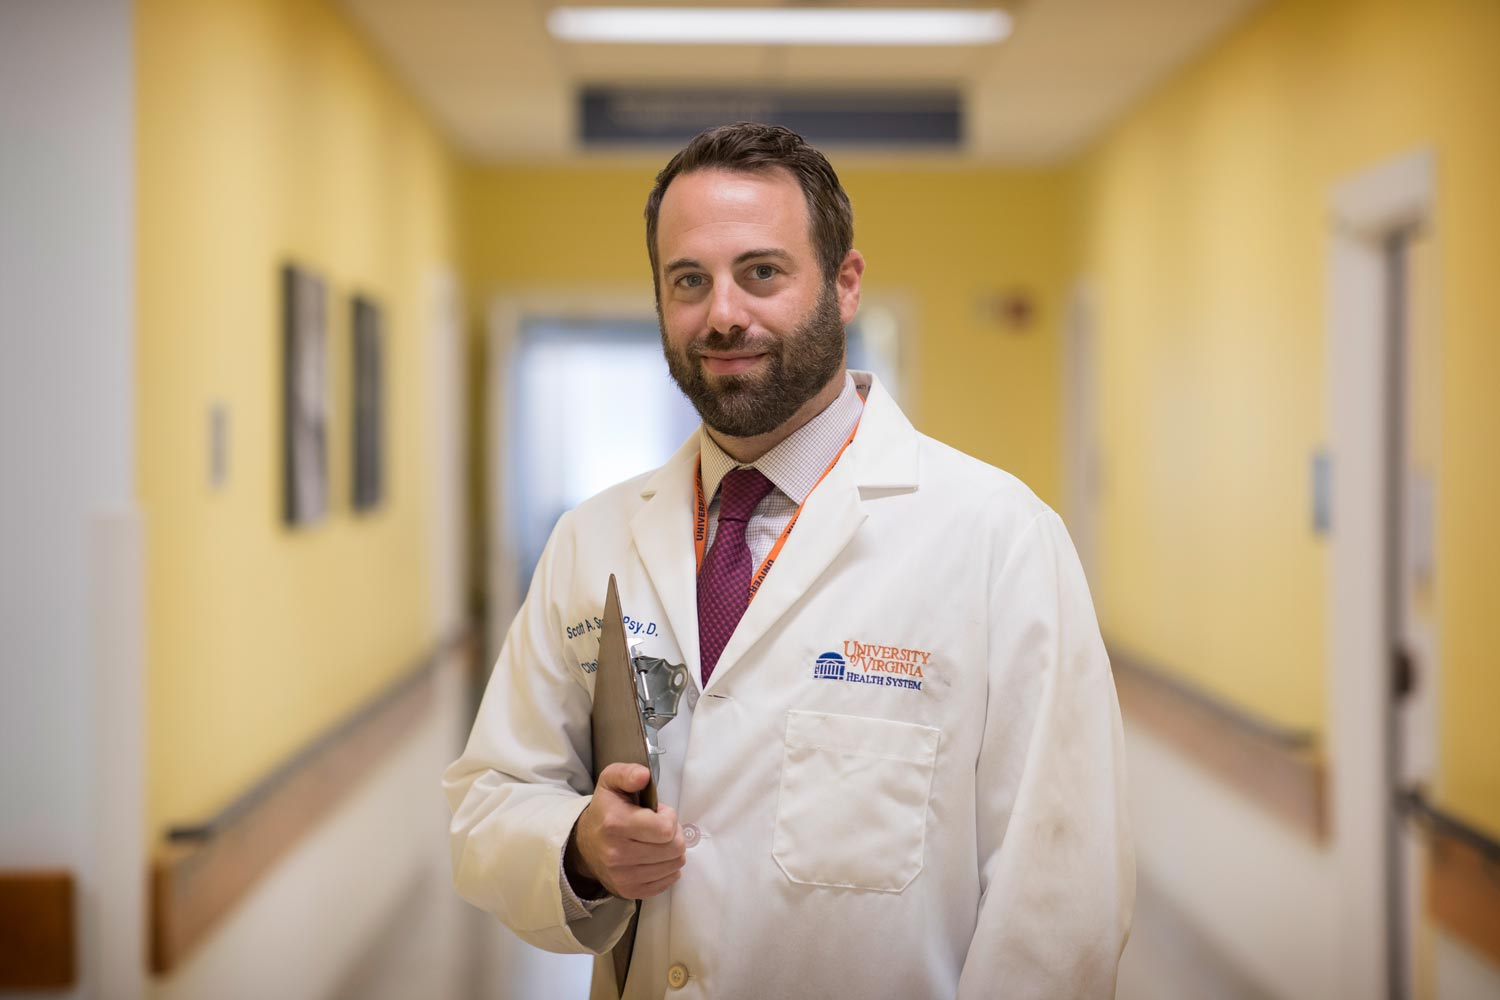 Clinical neuropsychologist Scott Sperling looked beyond the physical benefits of the focused ultrasound procedure to measure the quality-of-life effects as well.